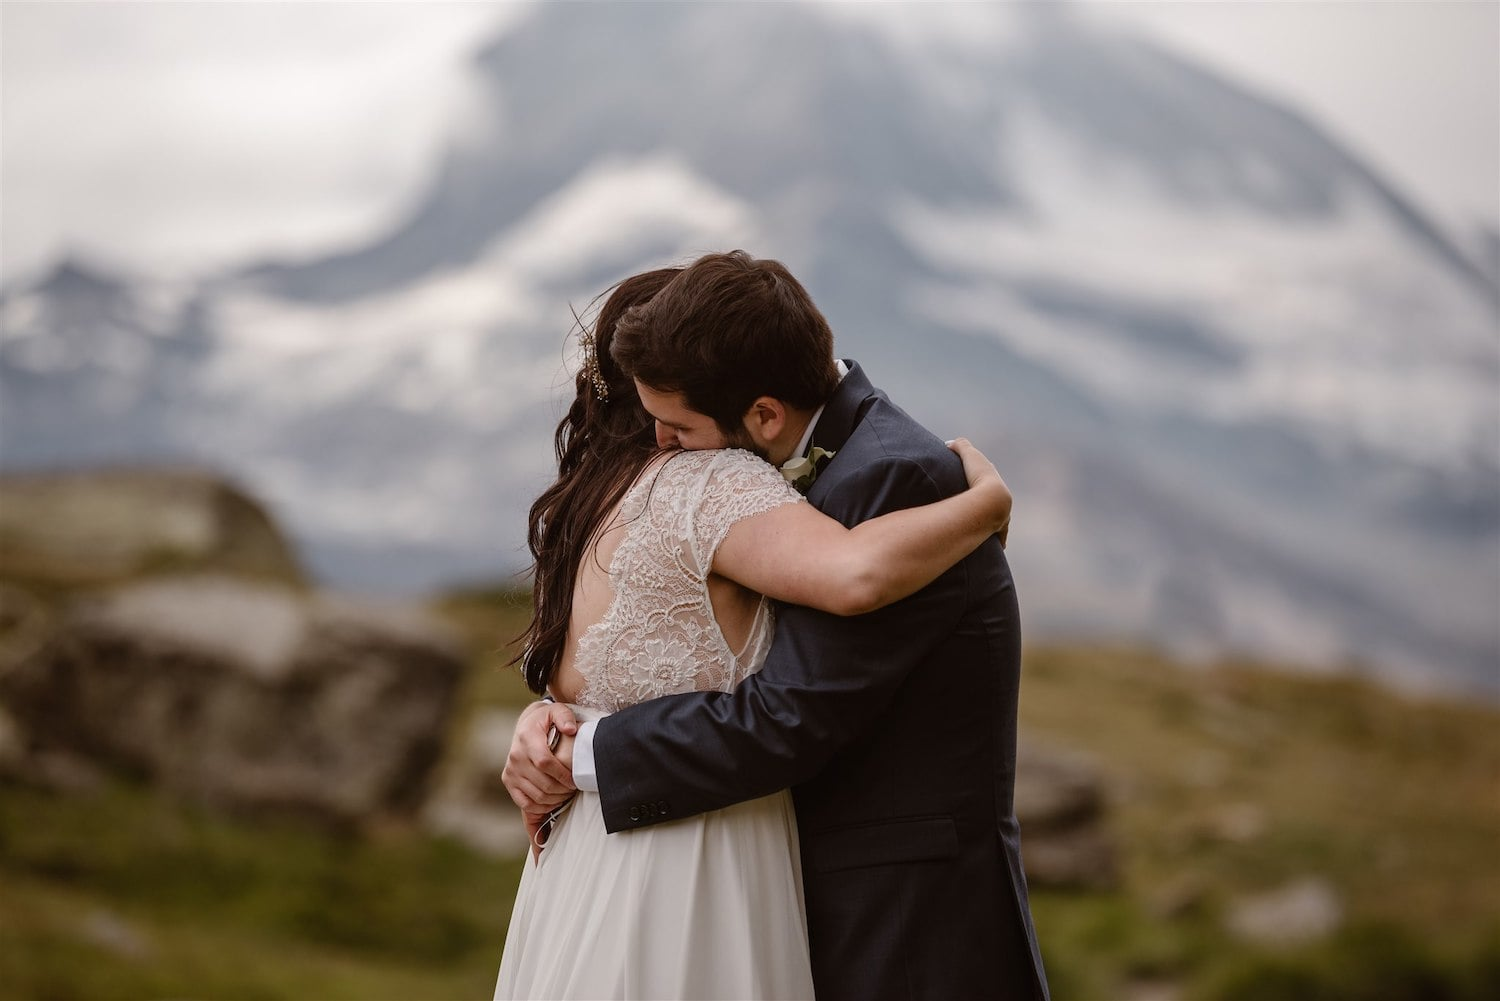 Newlyweds hugging after their marriage ceremony in the Swiss mountains